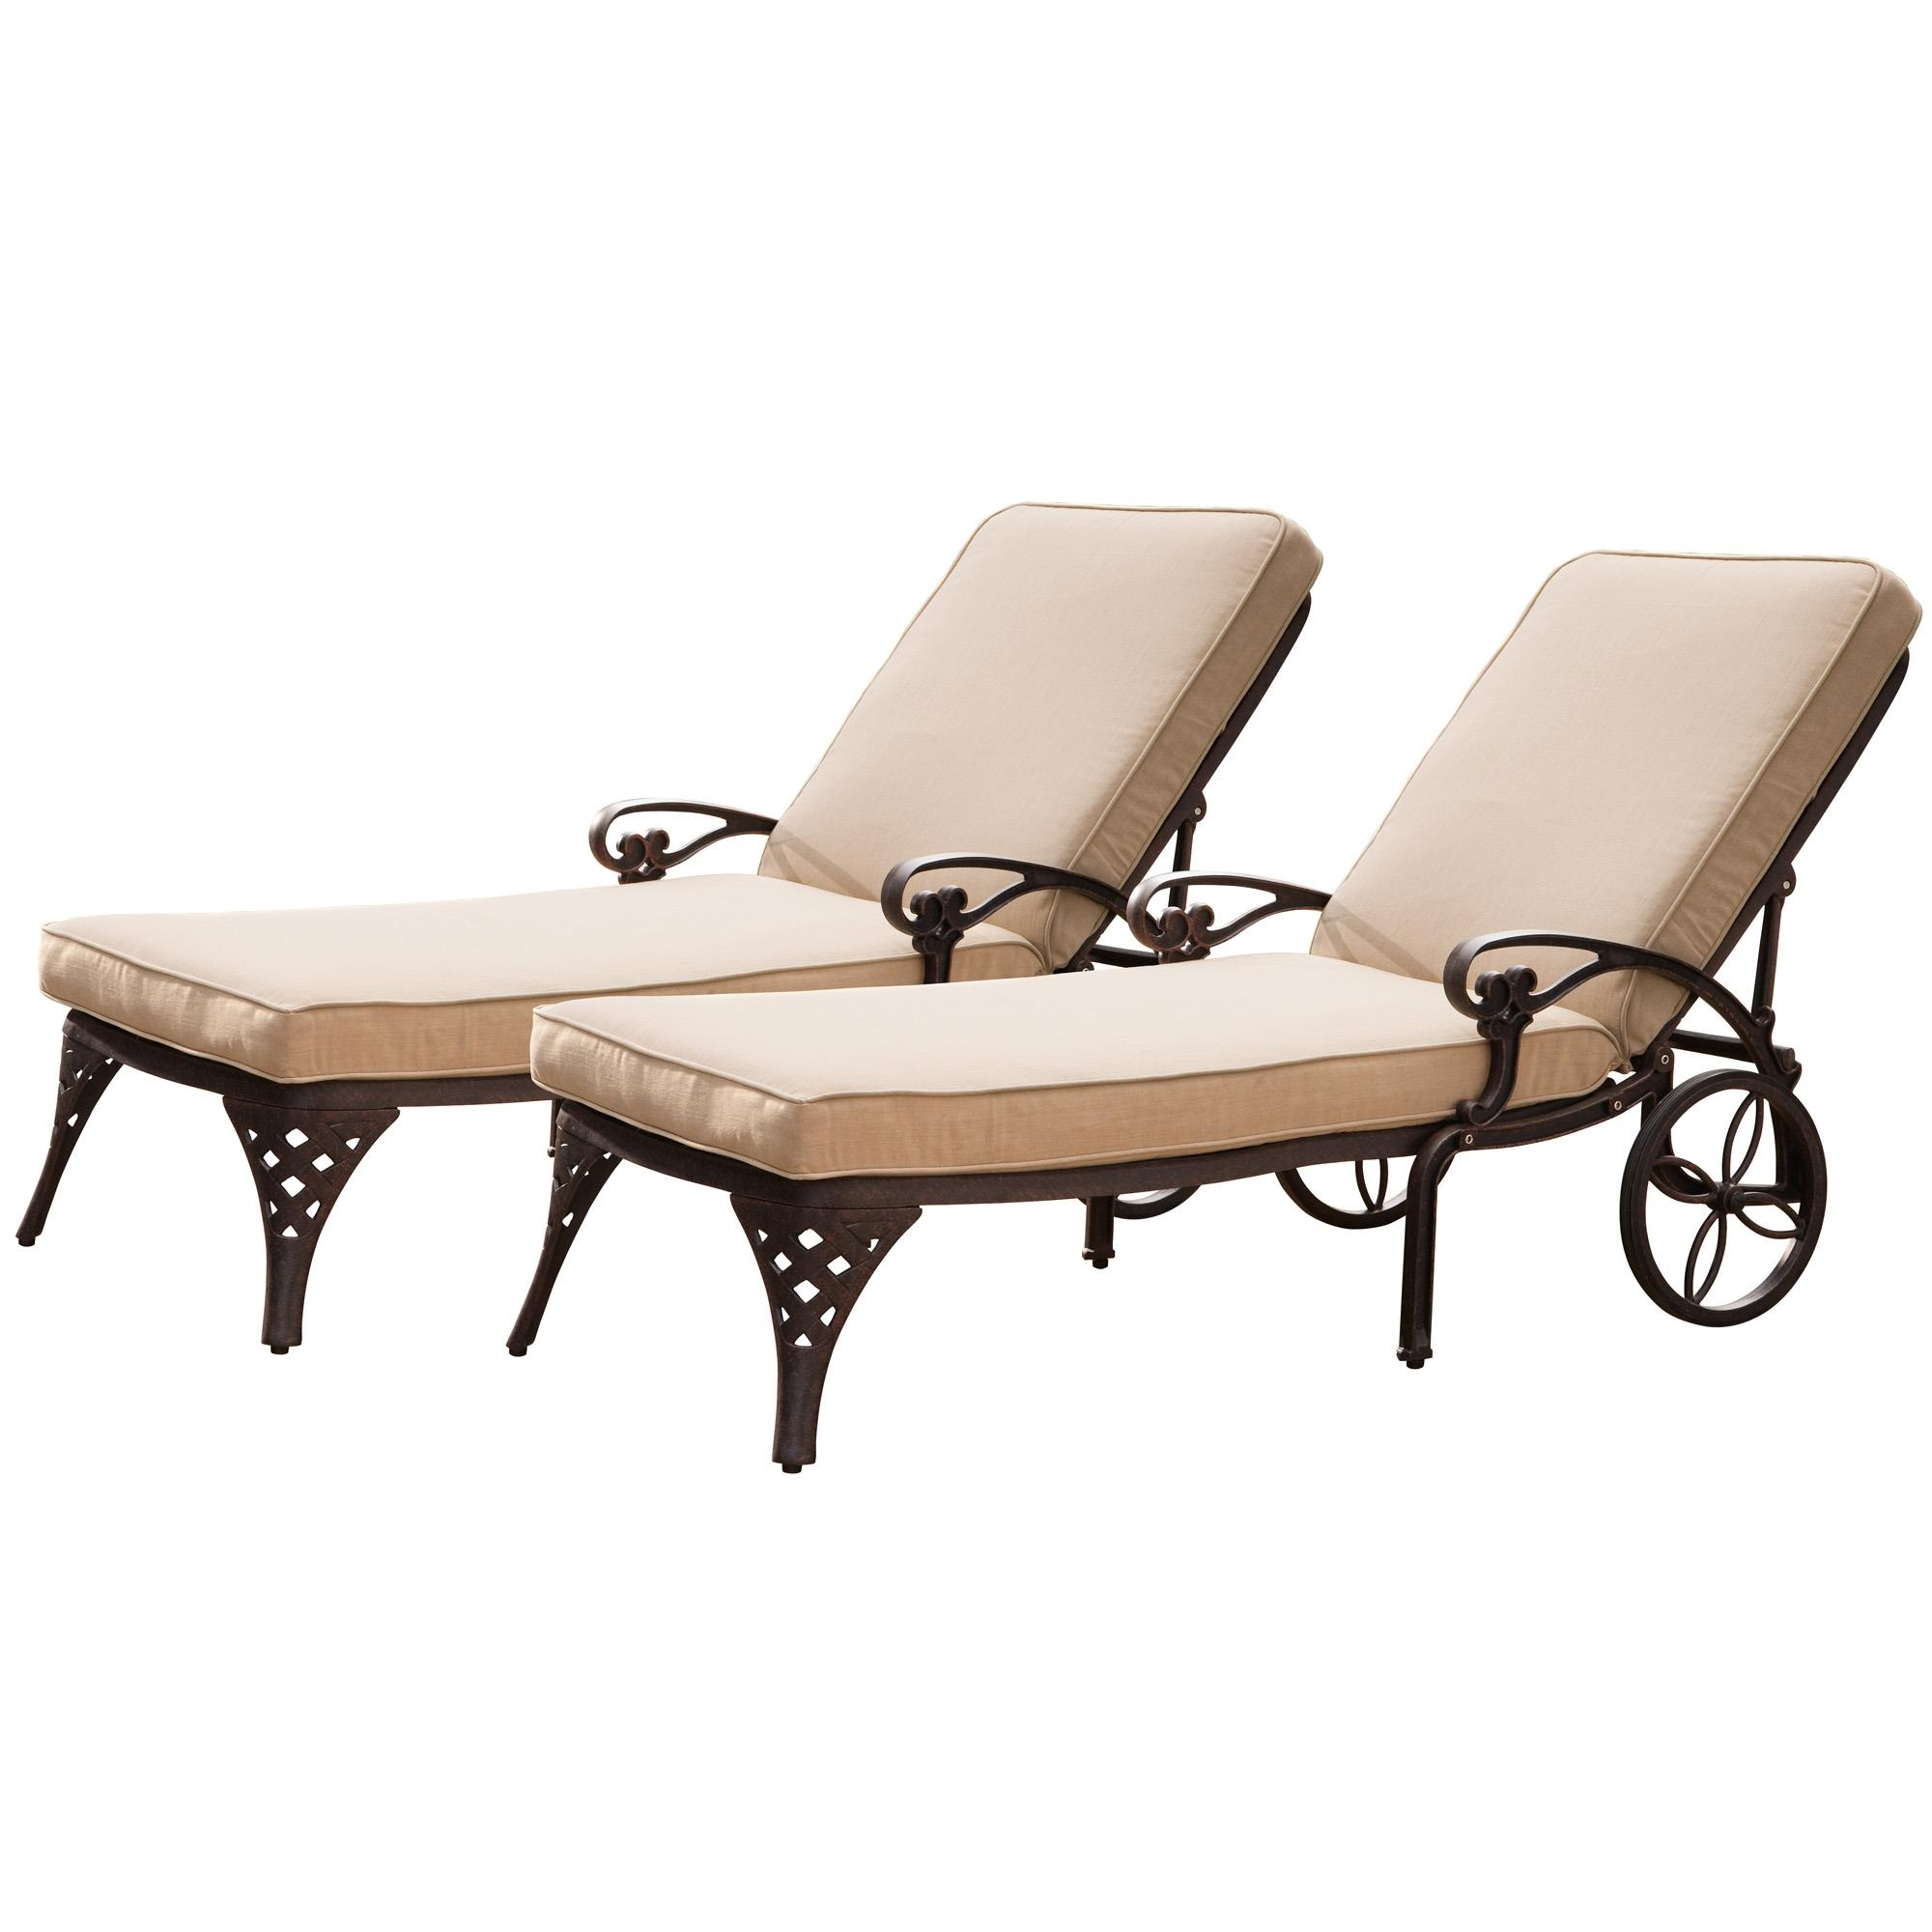 Most Up To Date Wrought Iron Chaise Lounge Chairs For Wrought Iron Chairs Outdoor Tags : Wrought Iron Lounge Chairs (View 15 of 15)